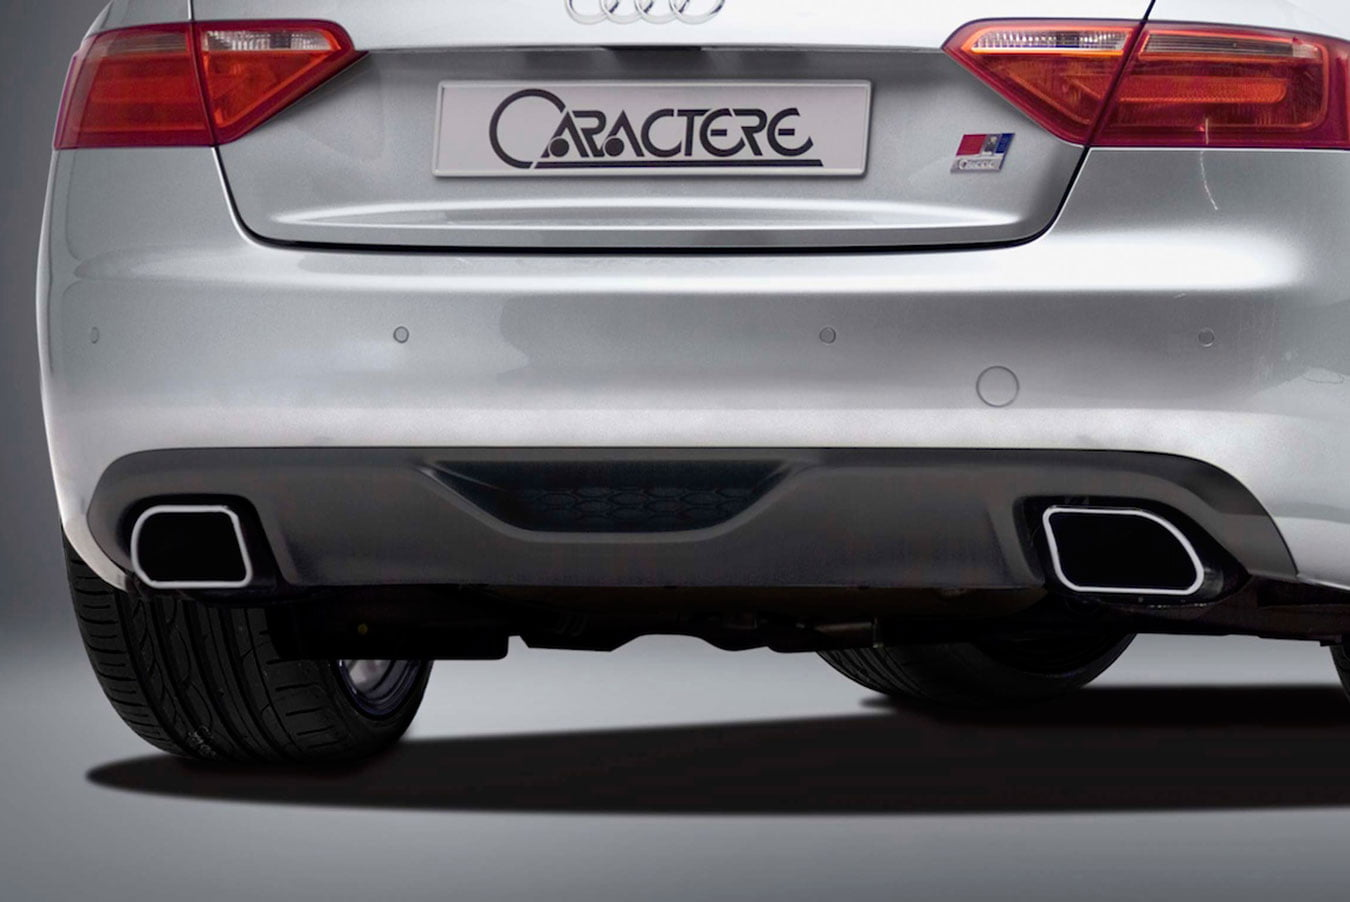 Caractere Rear Diffuser with 2 Mufflers, fits Audi A5 B8.0 2.0 TFSI